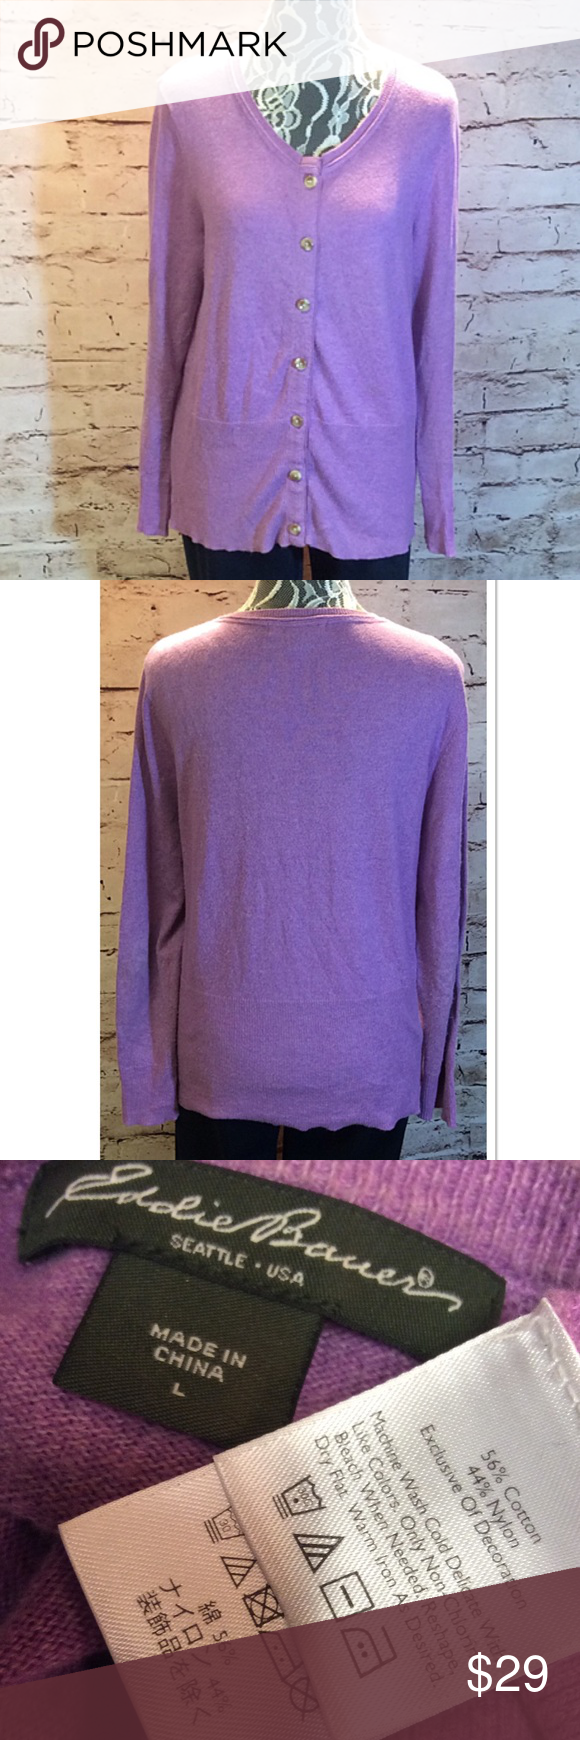 Sz lg eddie bauer light purple cardigan | Lightweight cardigan ...